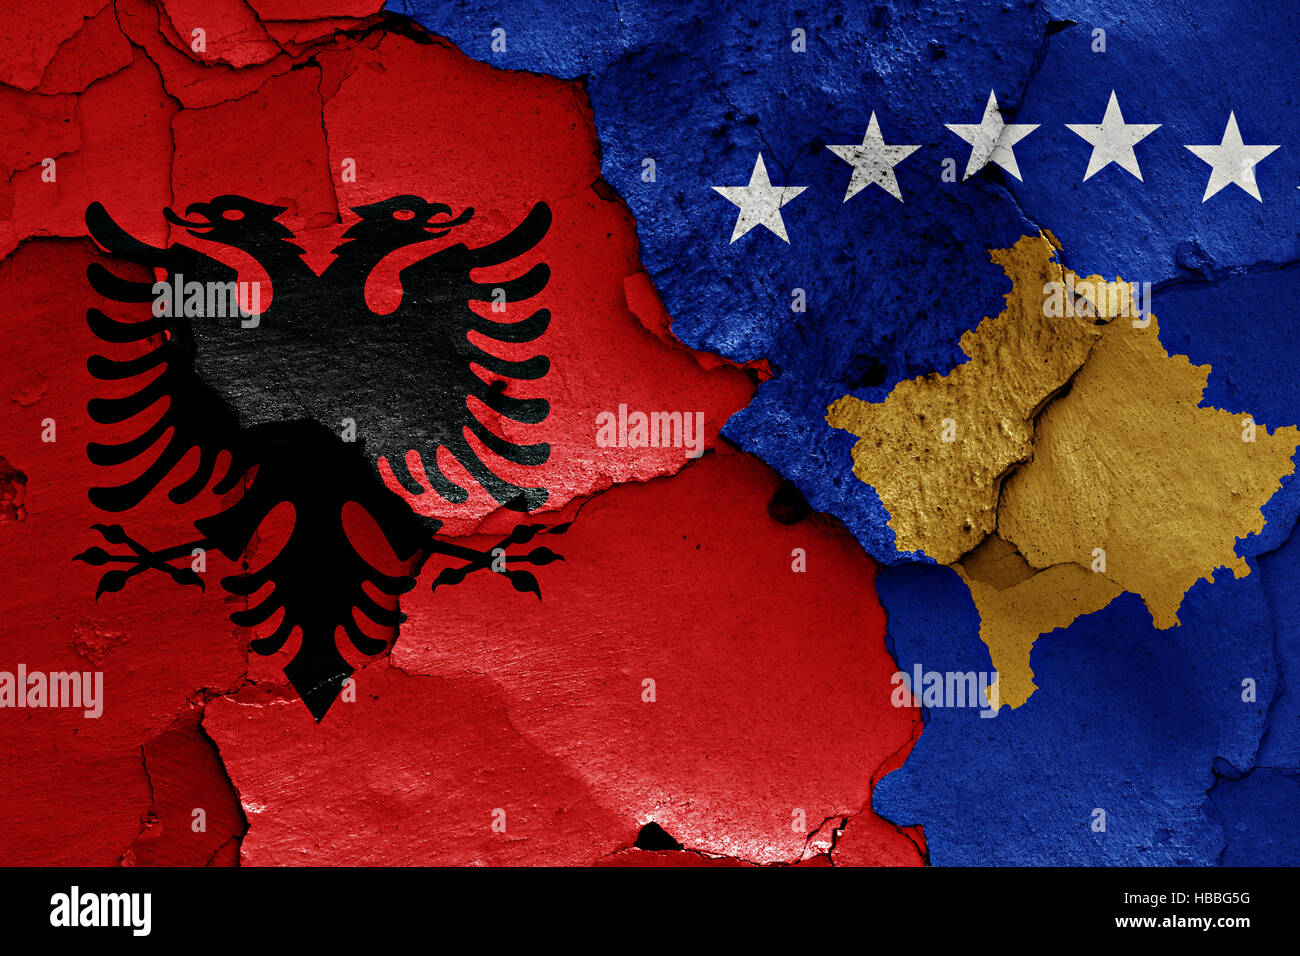 Flags Of Albania And Kosovo Painted On Cracked Wall Stock Photo - Albania flag